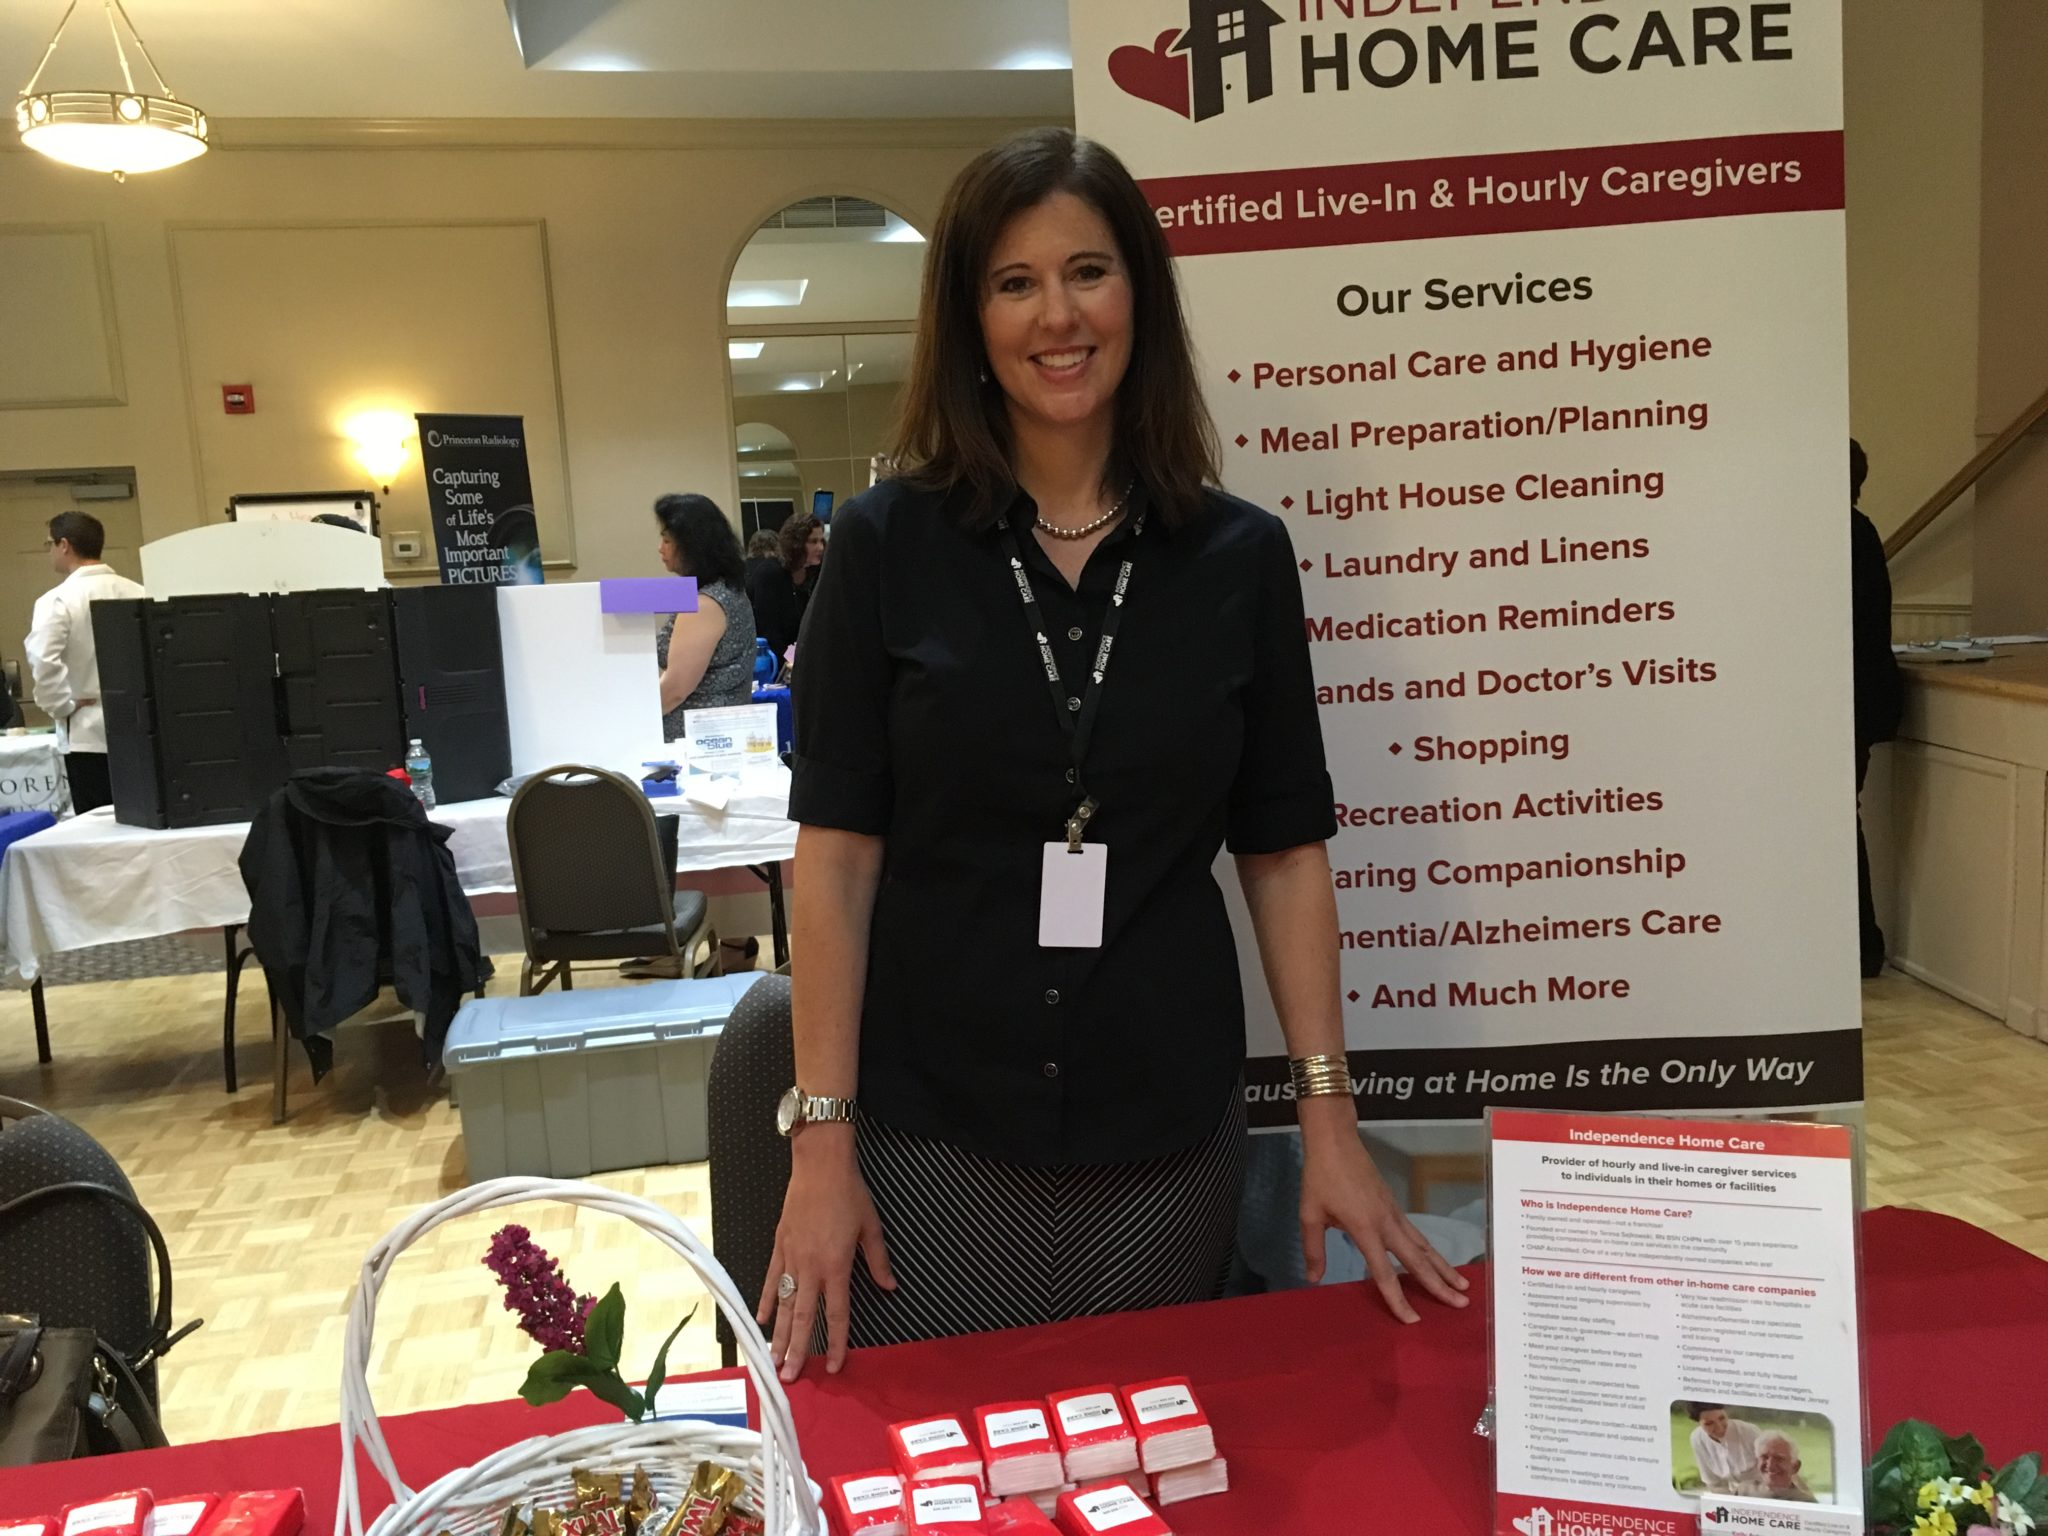 Home-Care-in-Monroe-Township-NJ